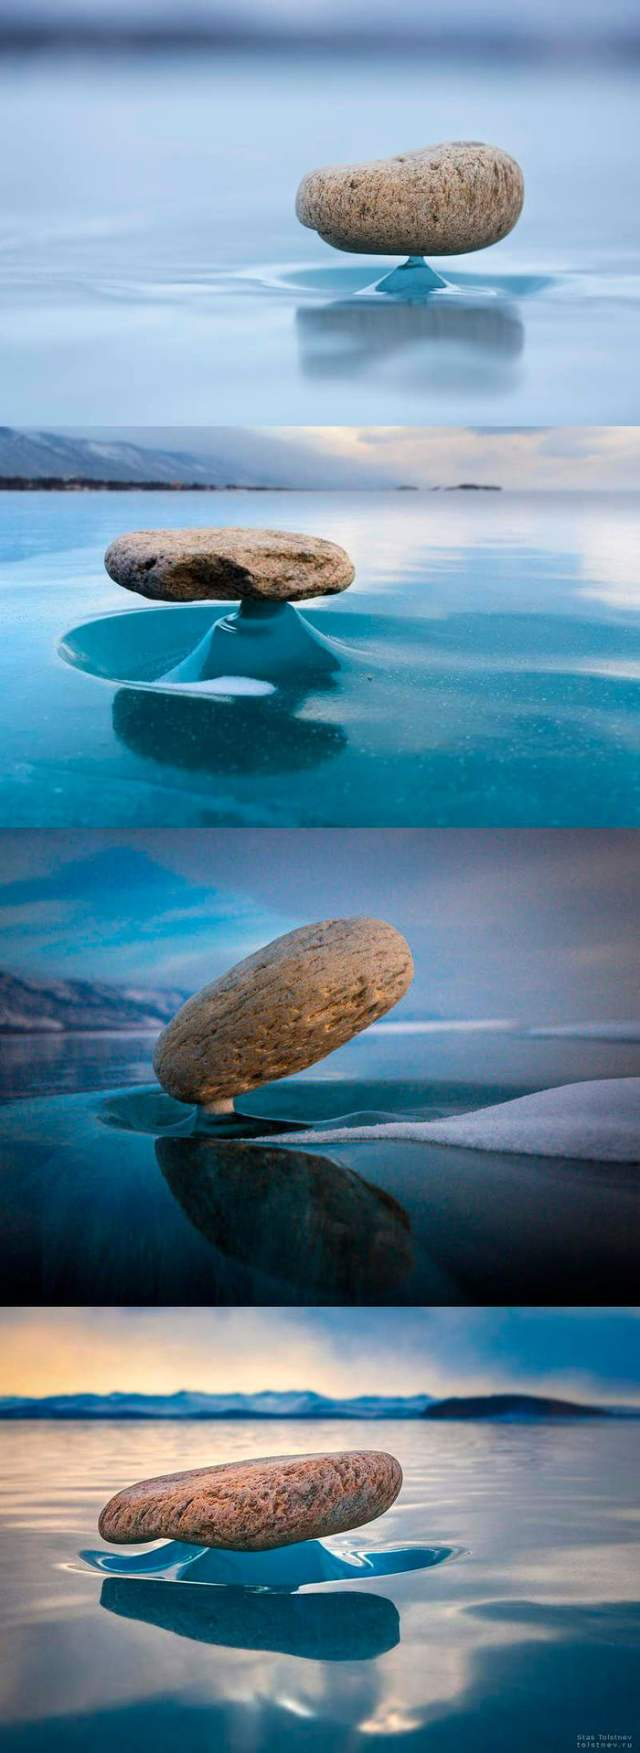 Rocks on the lake Baikal get heated from the sunlight every now and then  and melt the ice beneath. After the sun is gone, the ice turns solid again  thus creating a